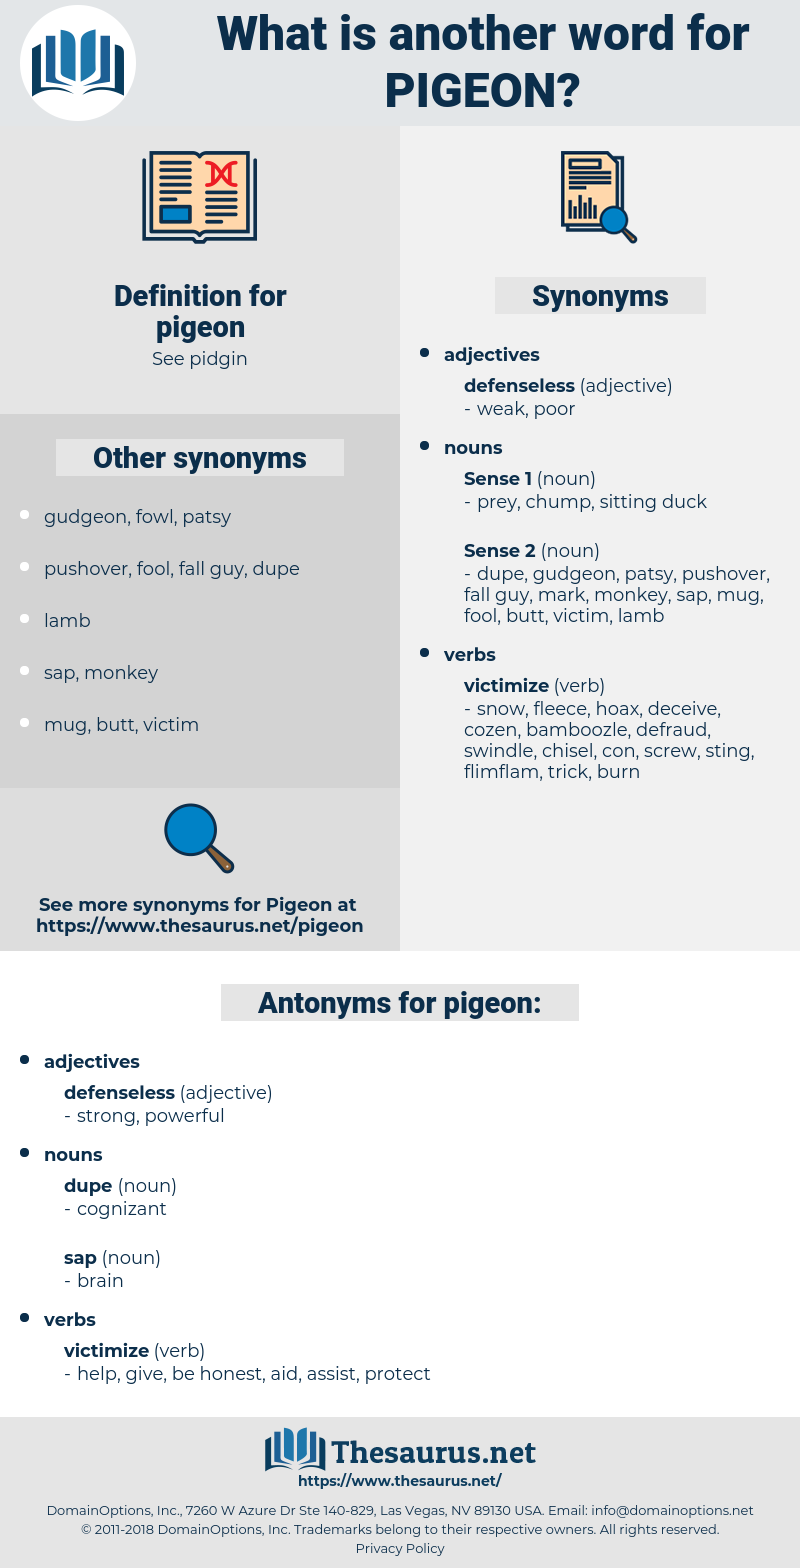 pigeon, synonym pigeon, another word for pigeon, words like pigeon, thesaurus pigeon